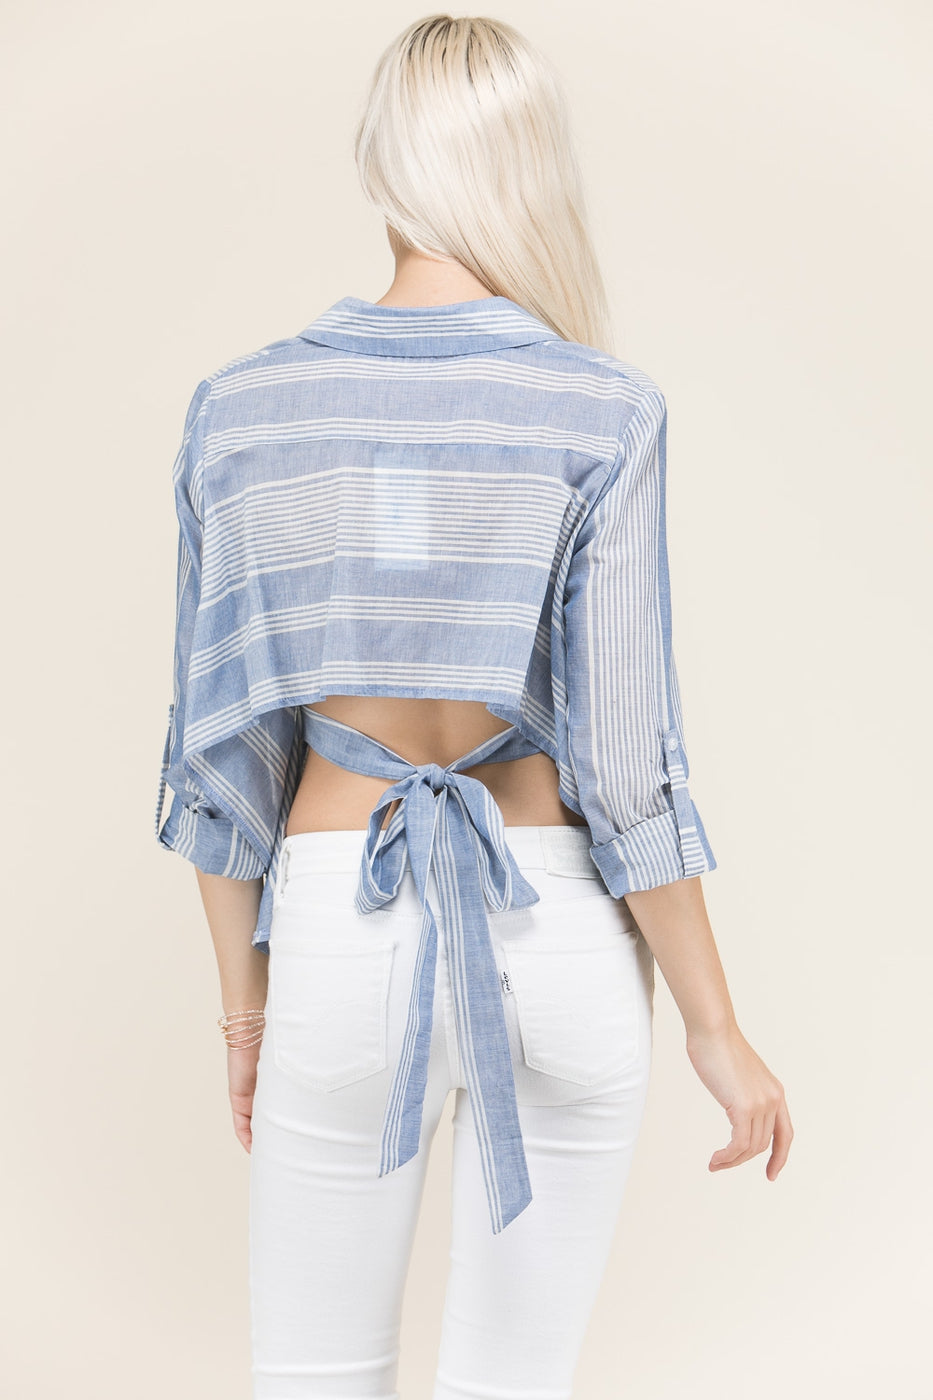 White/Navy Stripe Shirt Top With Open Back Tie Detail Siin Bees